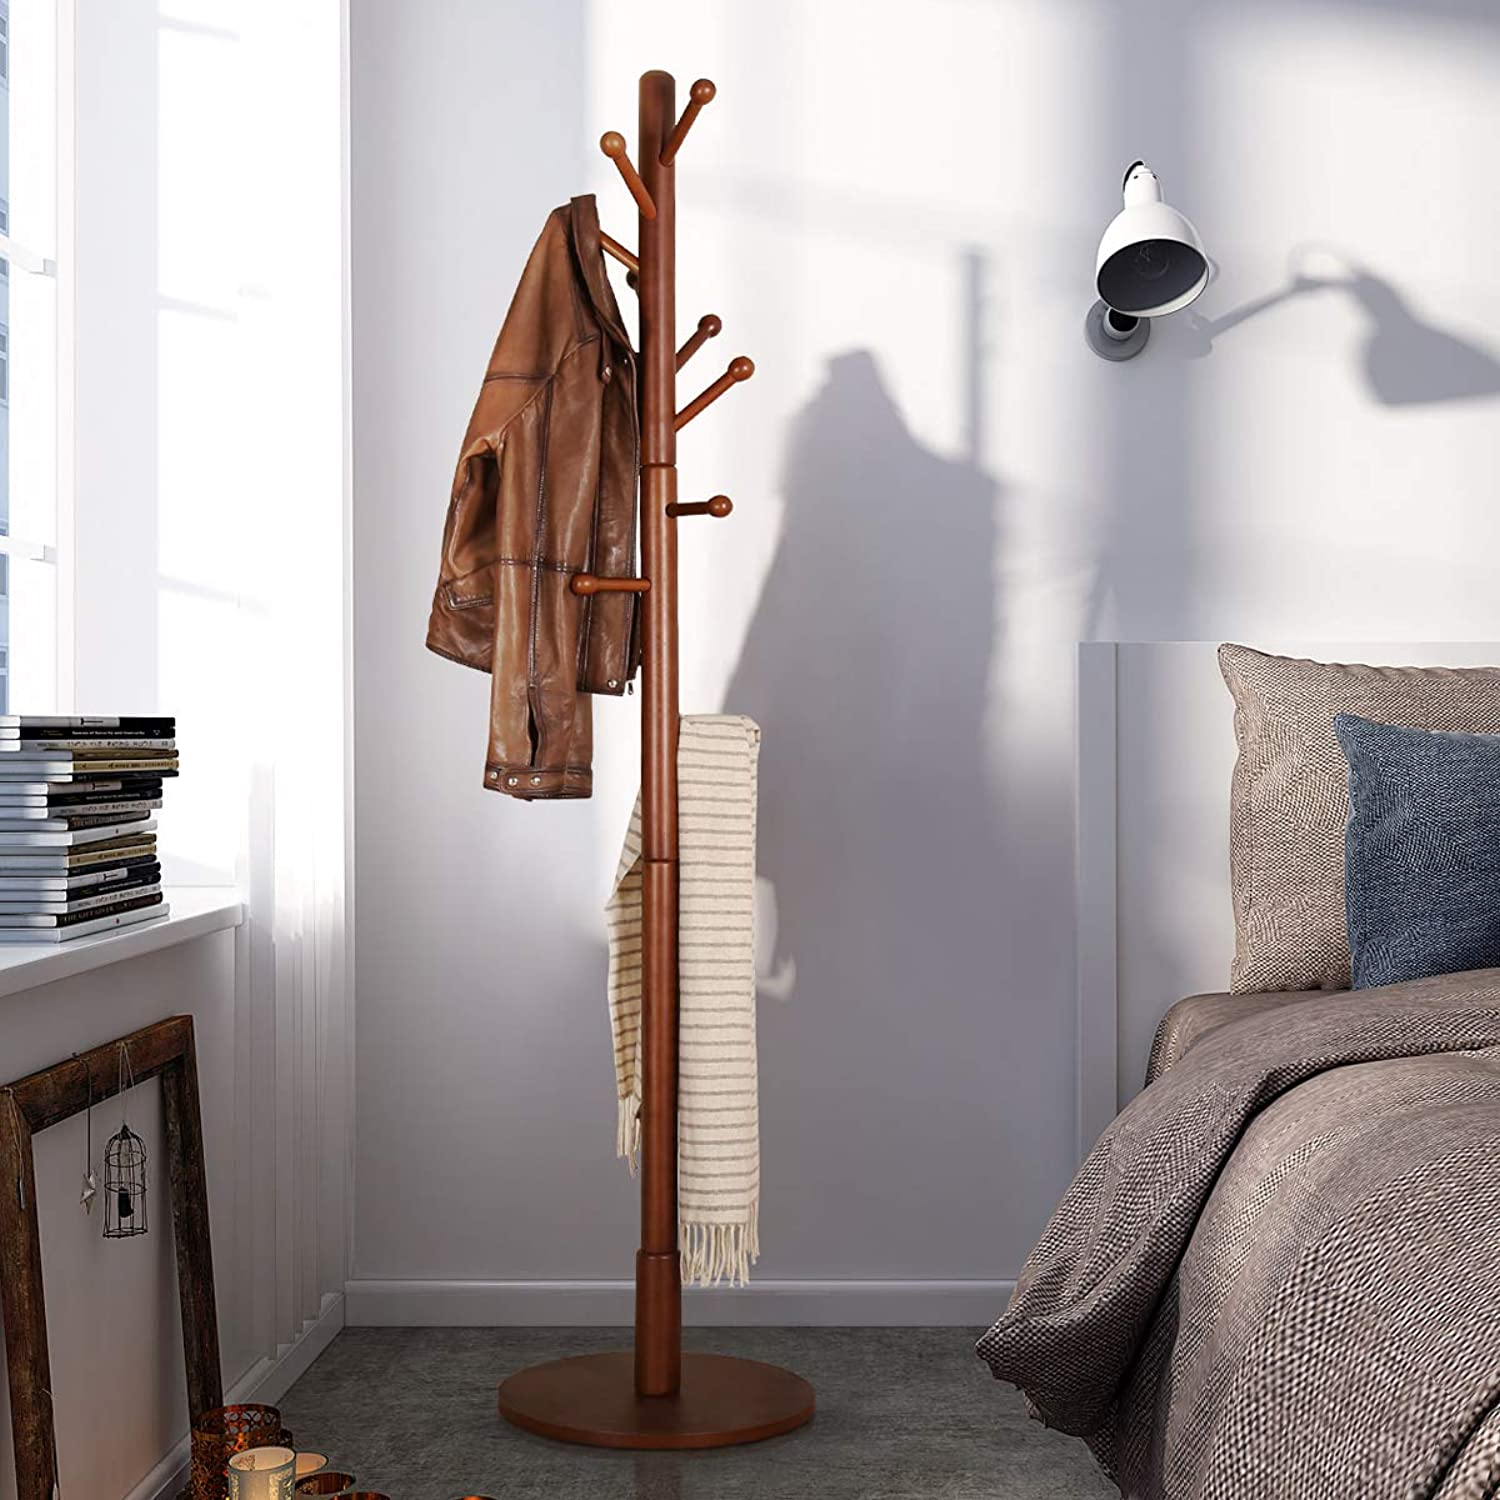 Vlush Sturdy Wooden Coat Rack Stand, Entryway Hall Tree Coat Tree with Solid Round Base for Hat,Clothes,Purse,Scarves,Handbags,Umbrella-Brown (Brown2)